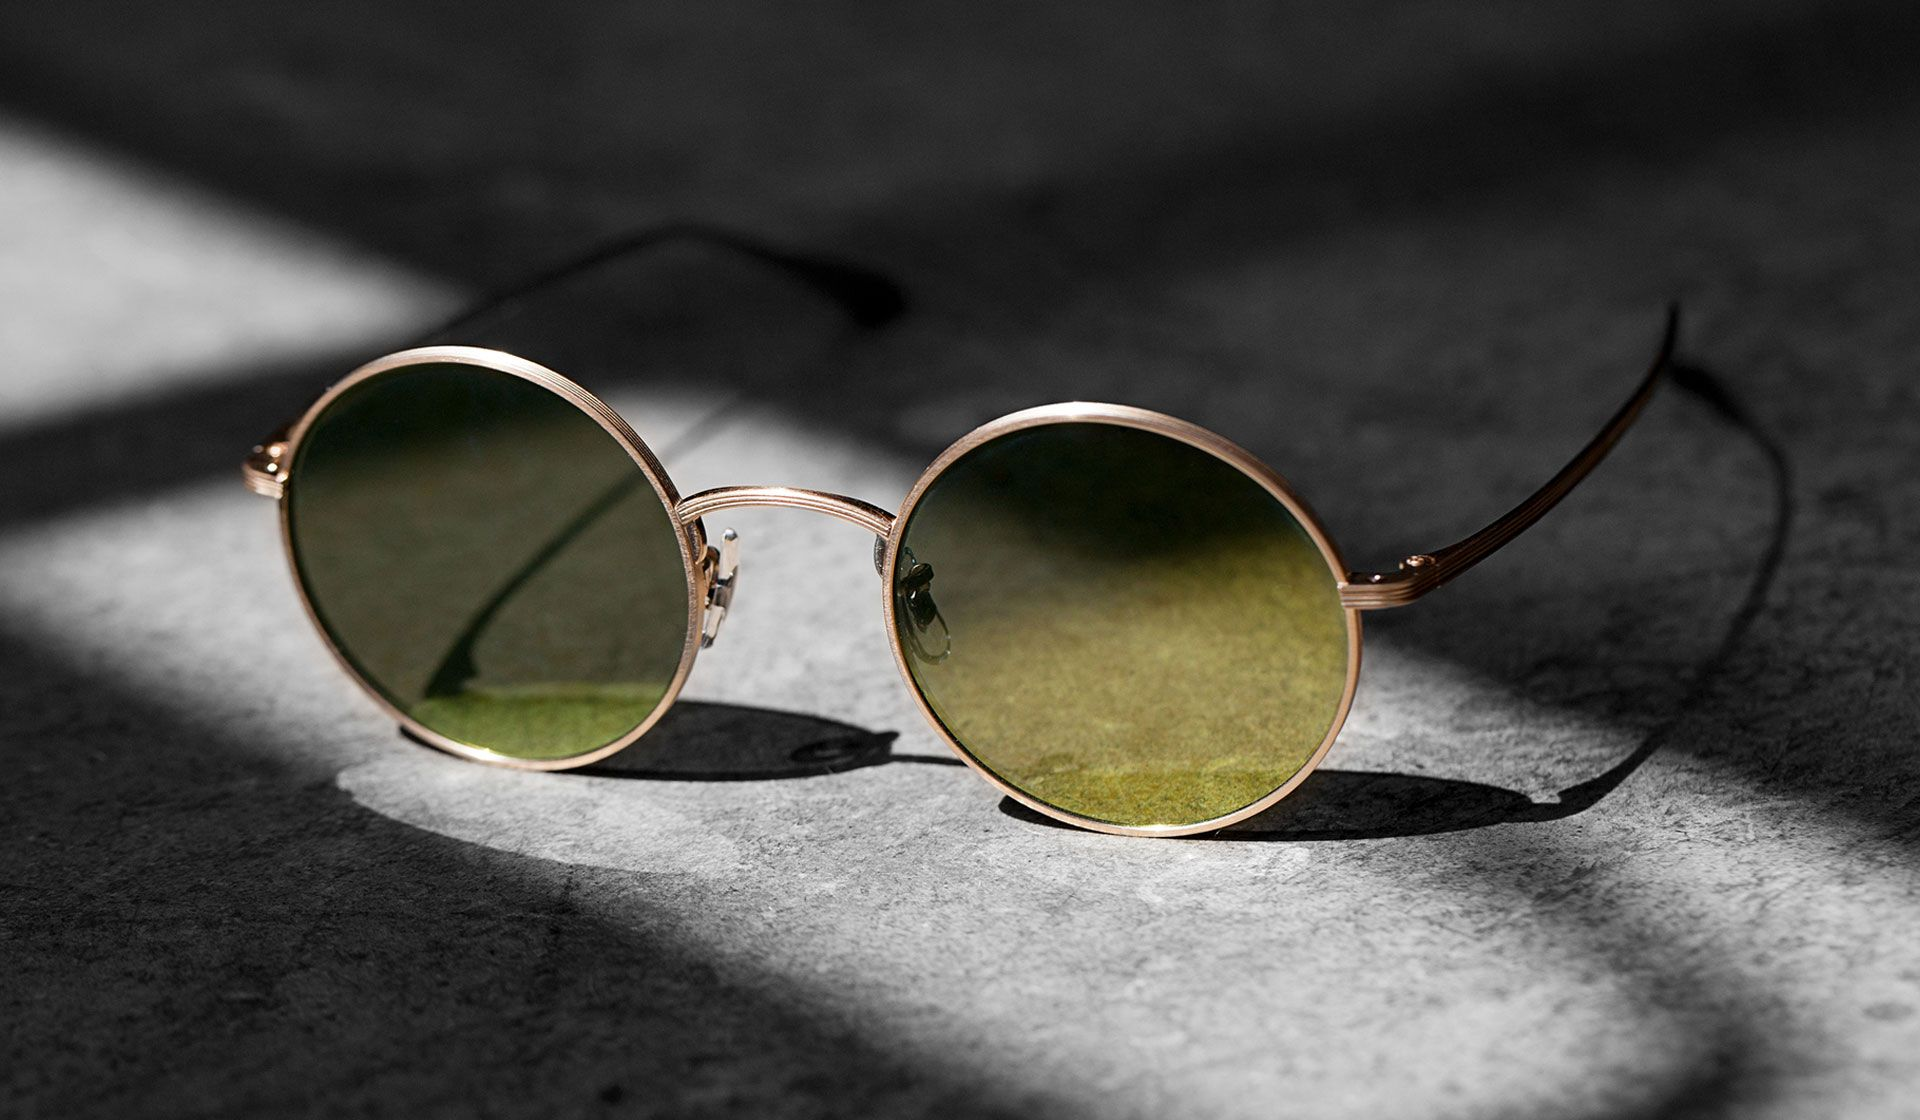 259ecbf330 Oliver Peoples and The Row partner to create a new collaboration of  sunglasses. The project was born with the idea of marrying two brands with  similar ...